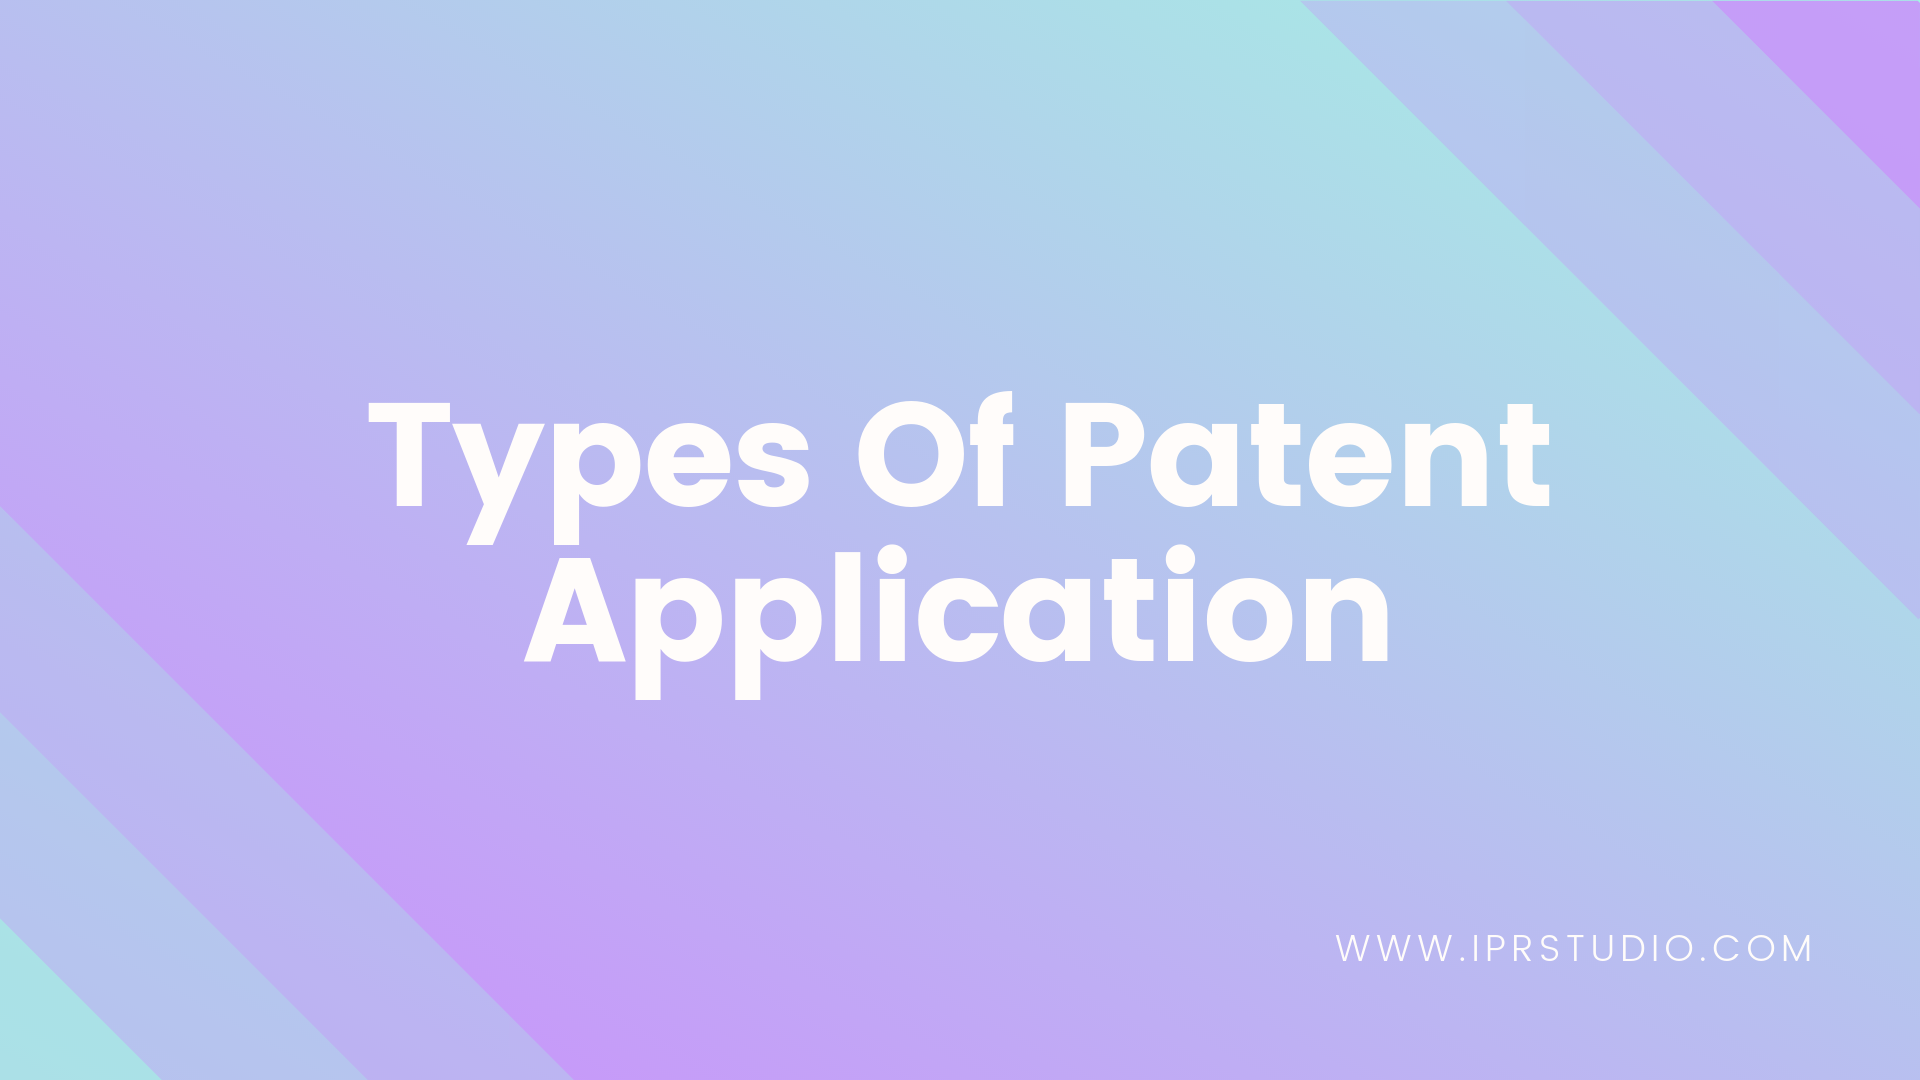 arches related to types of patent applications types of patent applications pdf patent application india patent application form publication of patent application priority application patent filing a patent application patent specification conventional application